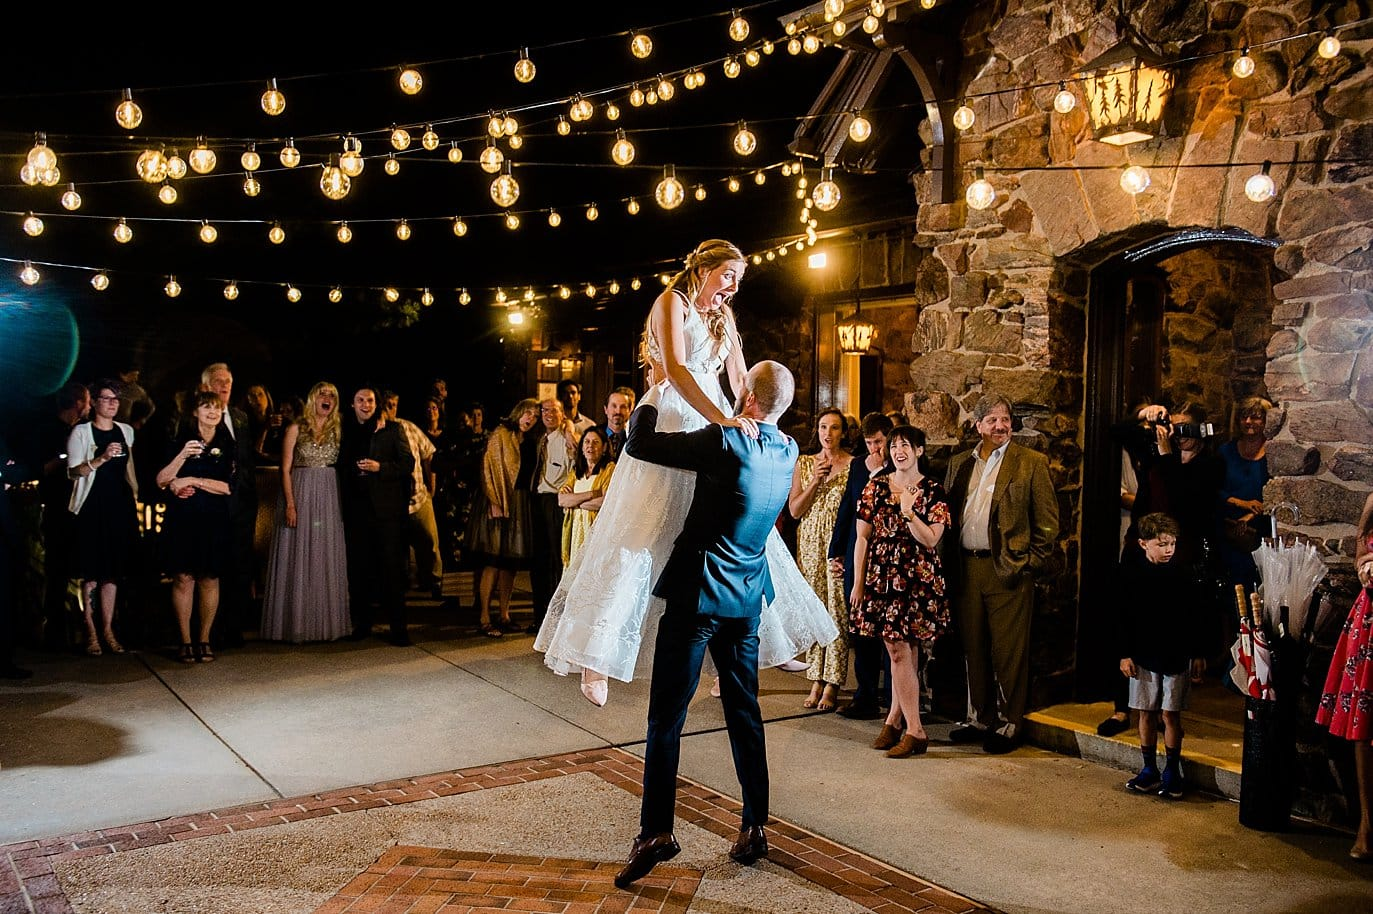 groom lifts bride during first dance on outdoor patio under the market lights